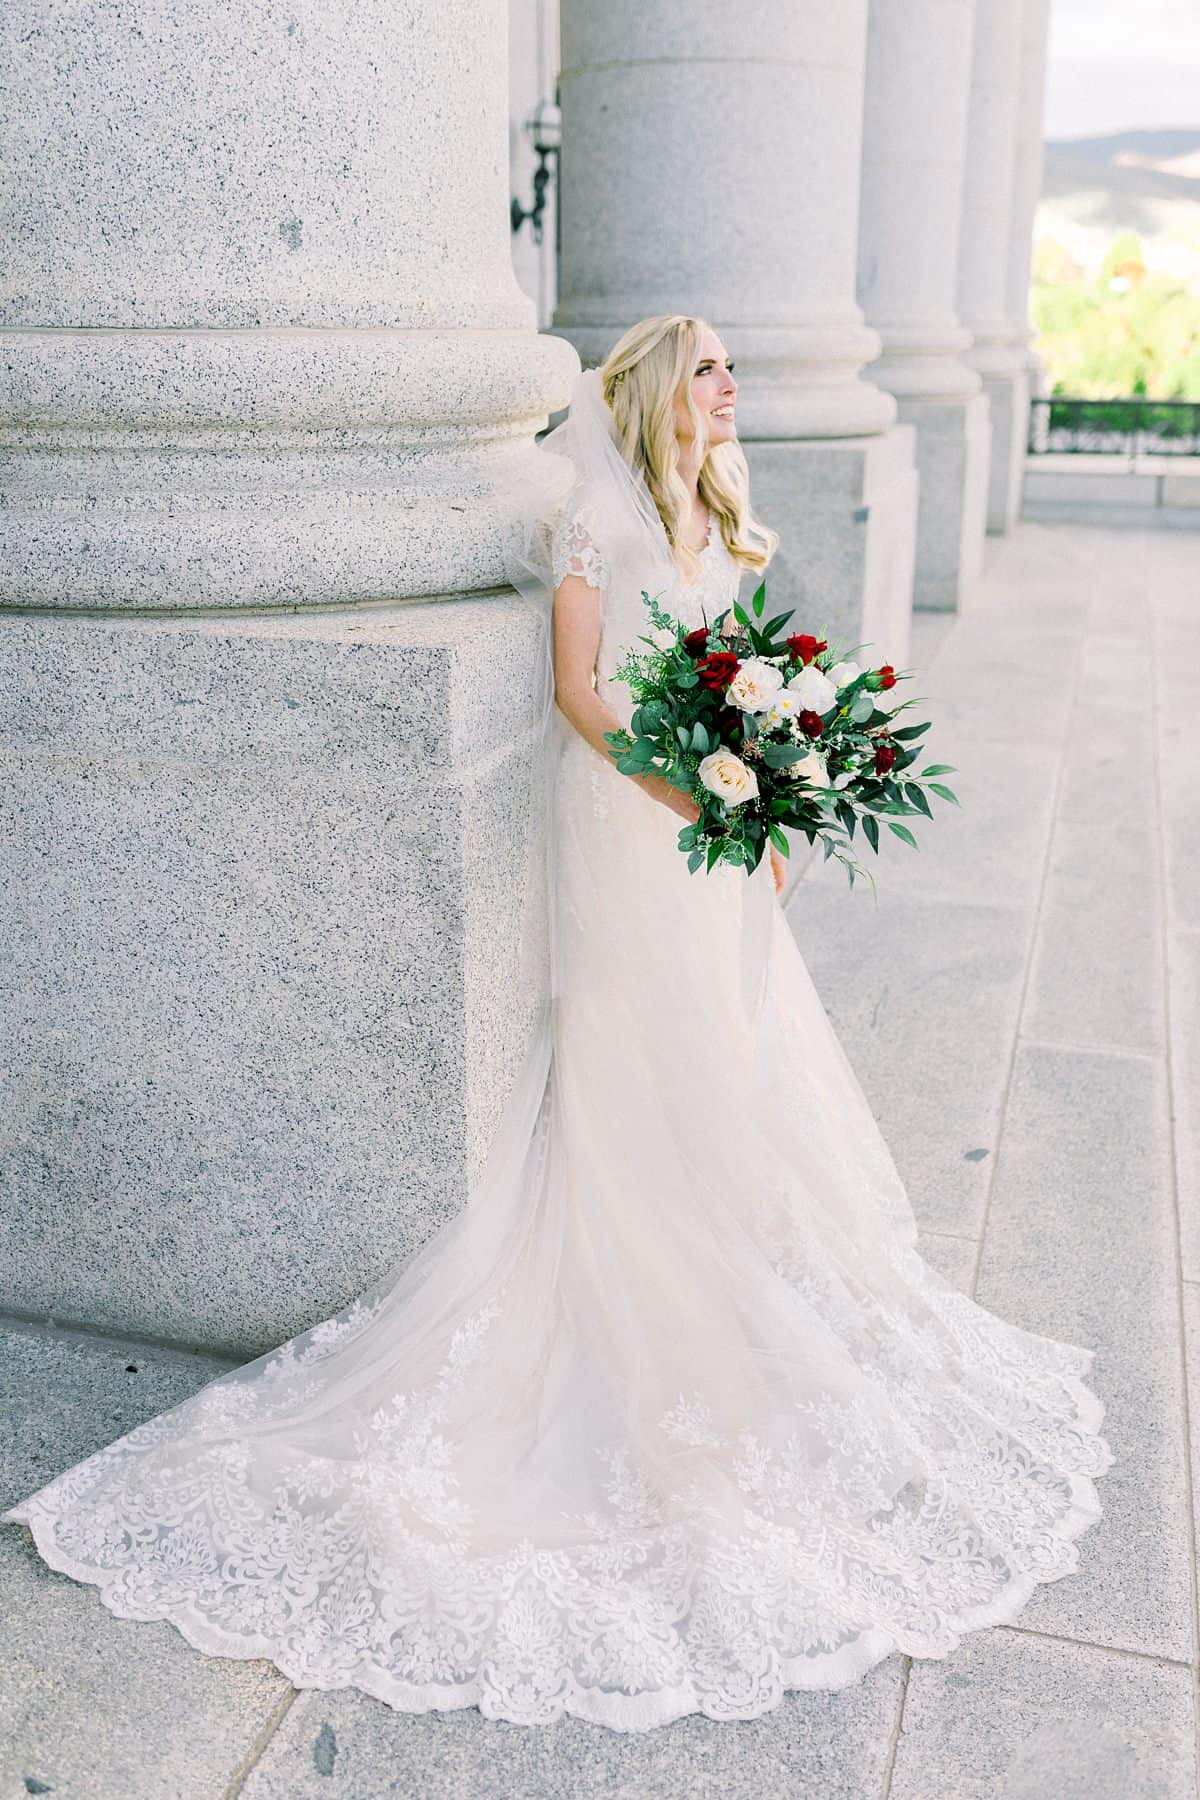 Modest lace wedding dress, bride with long veil and long hairstyle, red and white wedding flowers bouquet